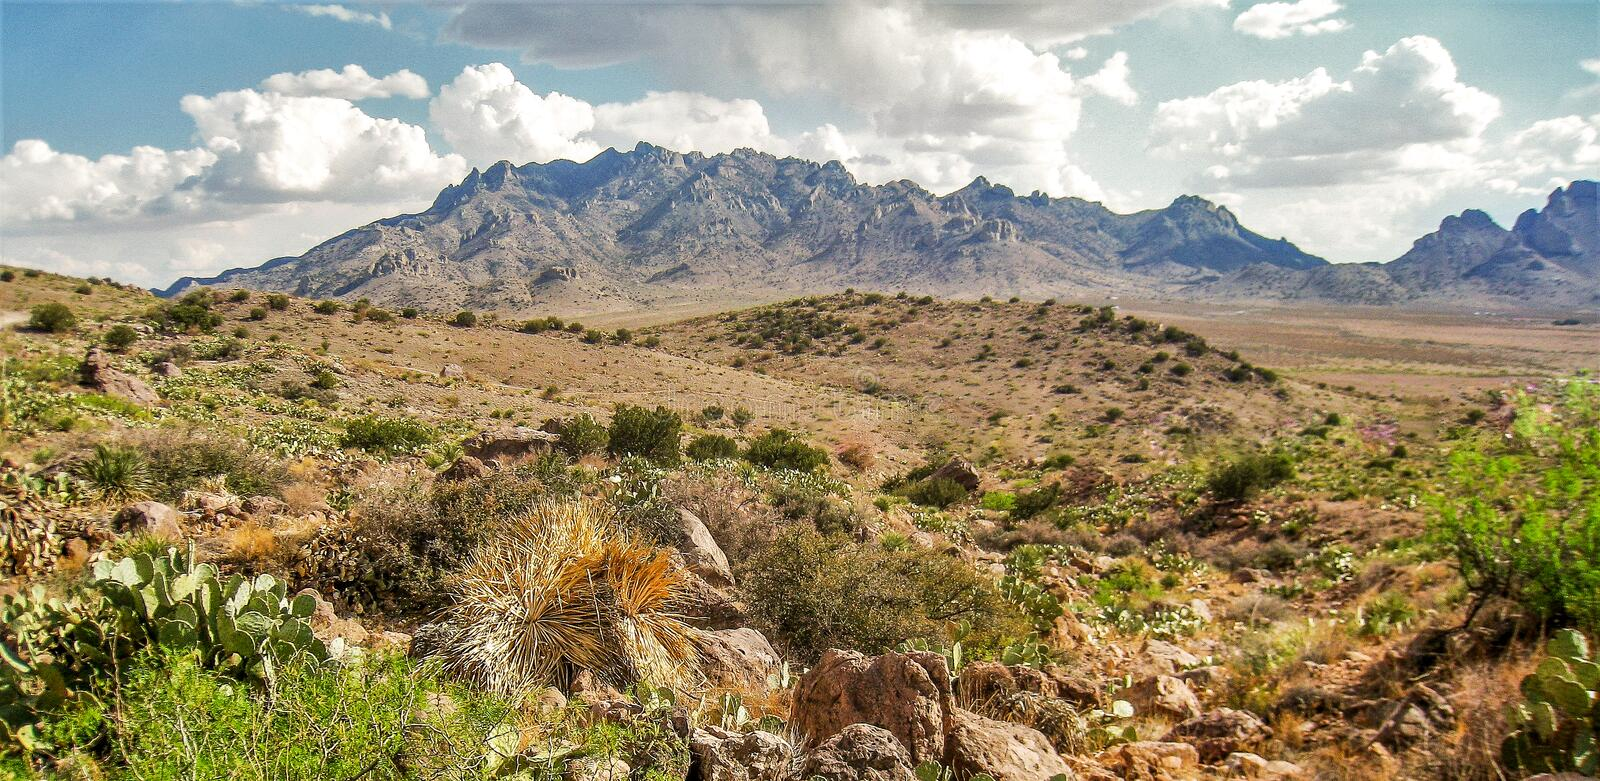 Florida Mountains near Deming, New Mexico. The Florida Mountains provide a scenic backdrop for Rockhound State Park just east of Deming, New Mexico stock photos